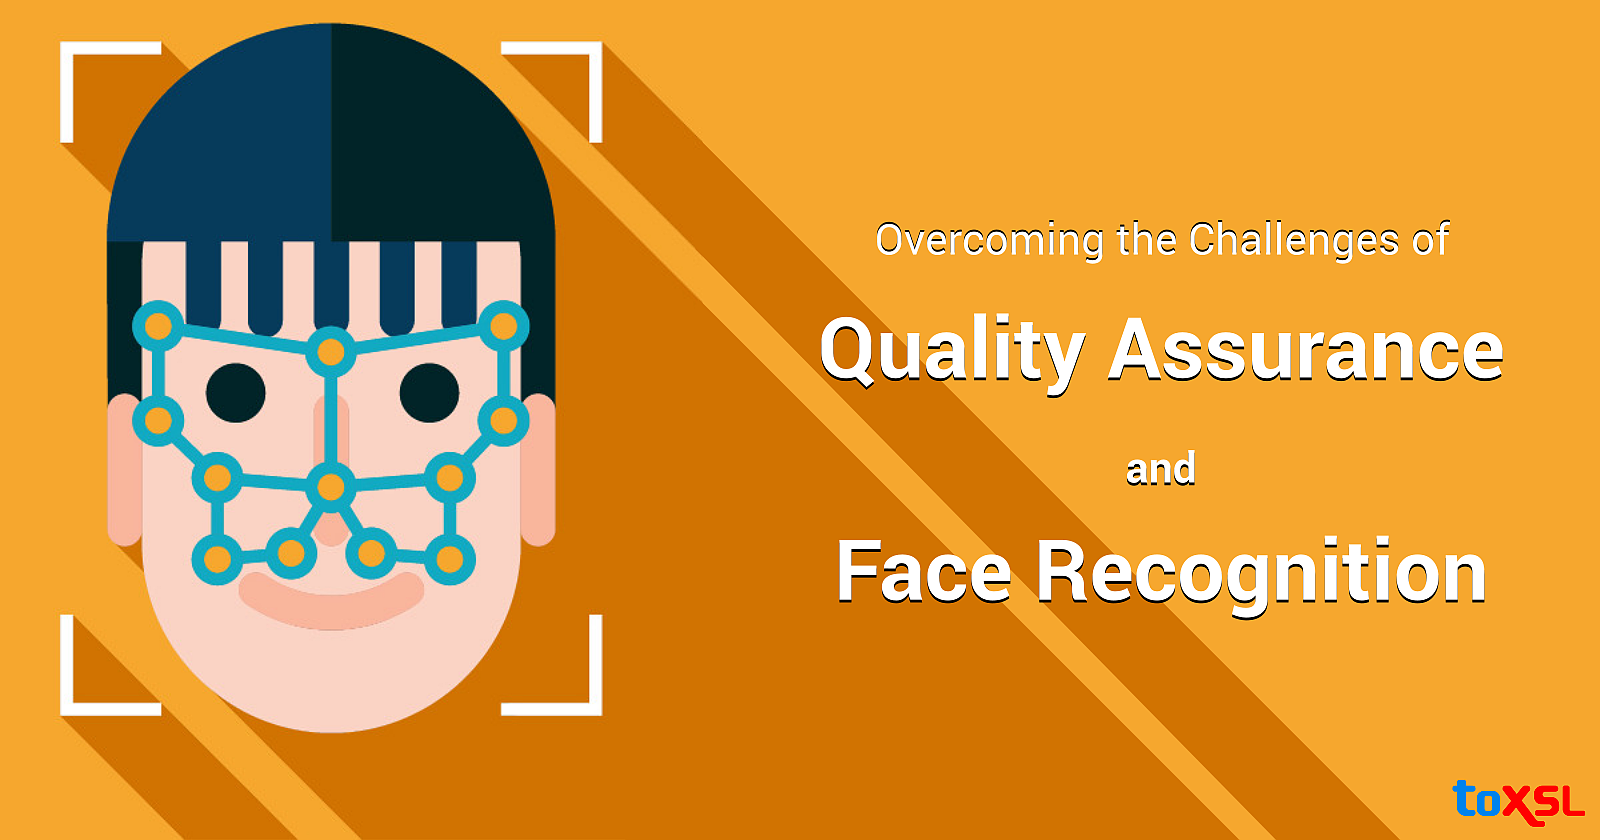 Quality Assurance and Face Recognition: Overcoming the Challenges Together